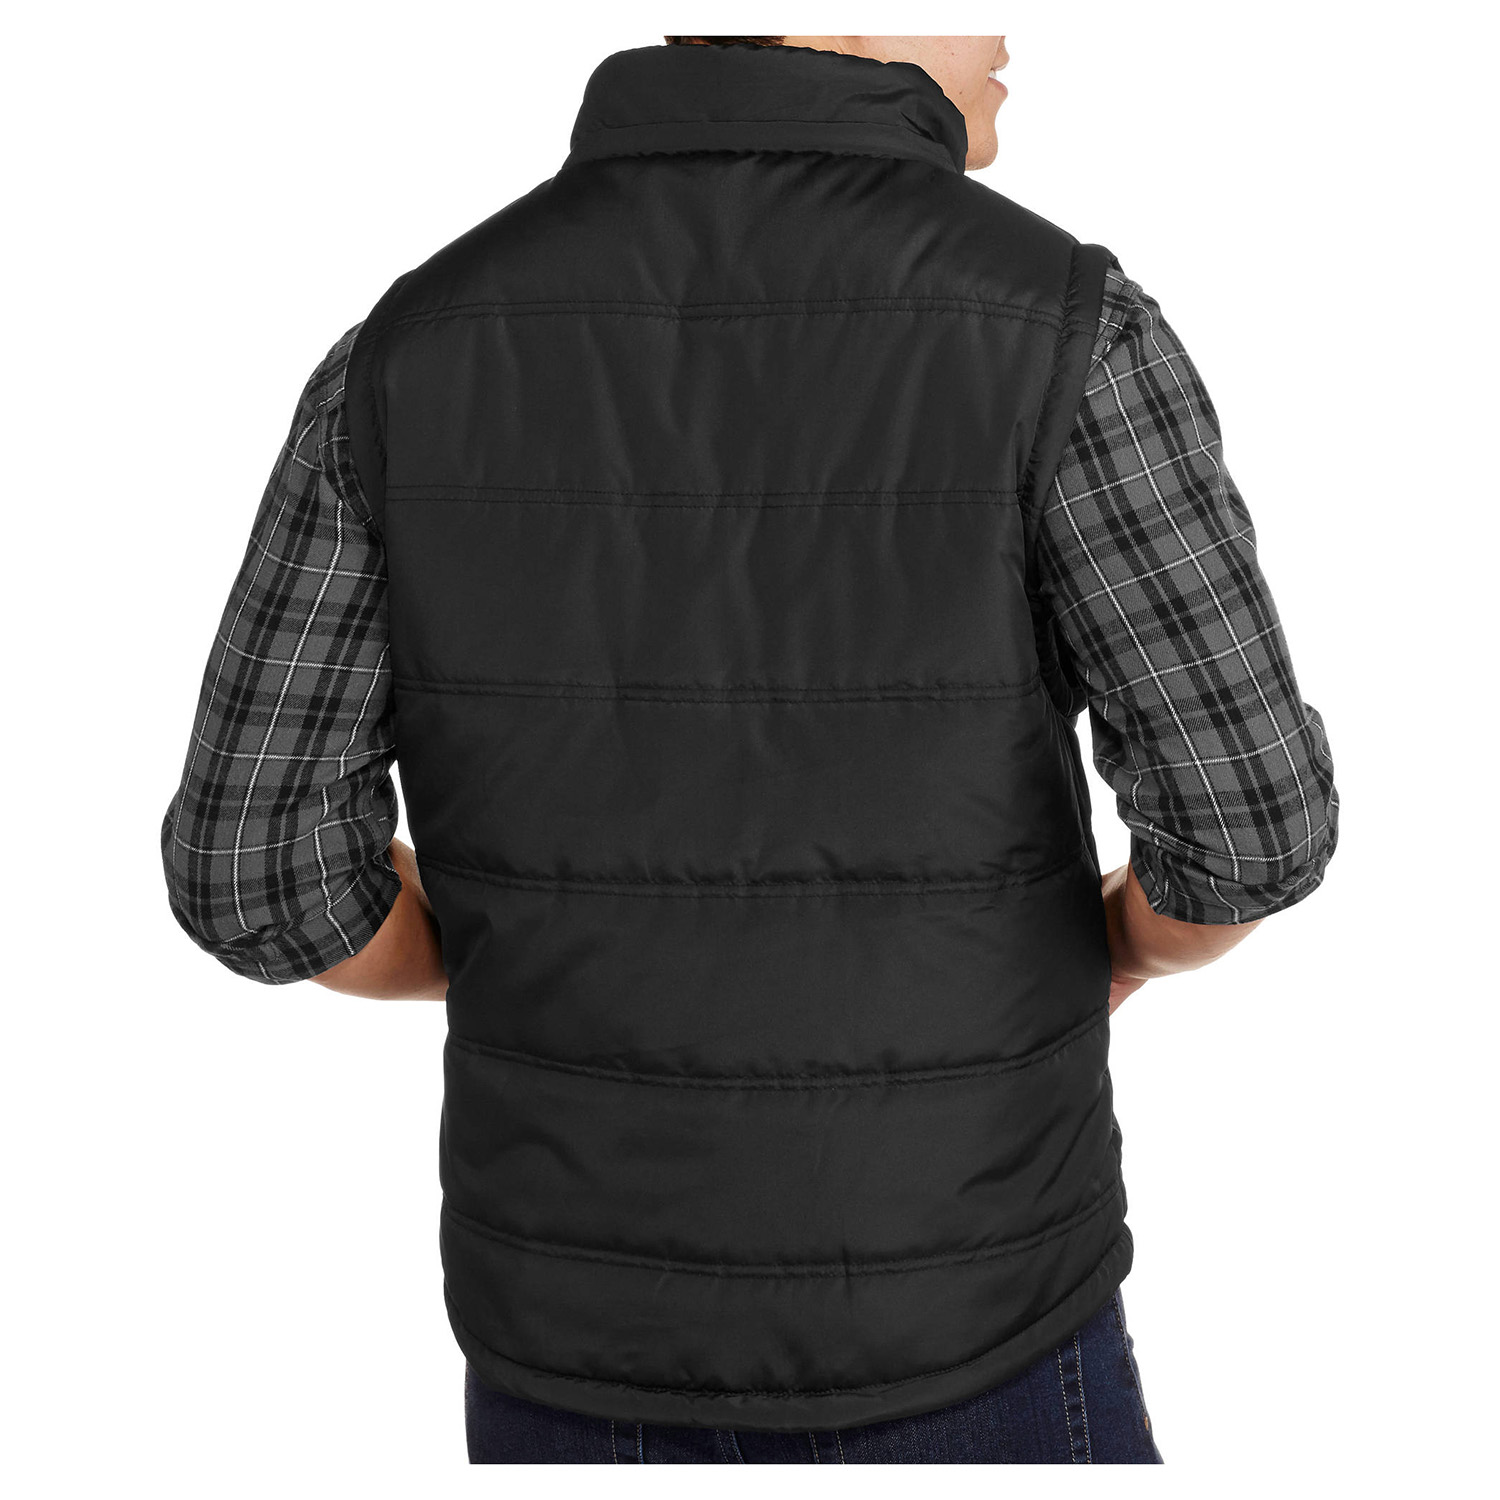 thumbnail 3 - Alta-Men-039-s-Reversible-Puffer-Zip-Up-Vest-with-Removable-Hoodie-Plaid-Jacket